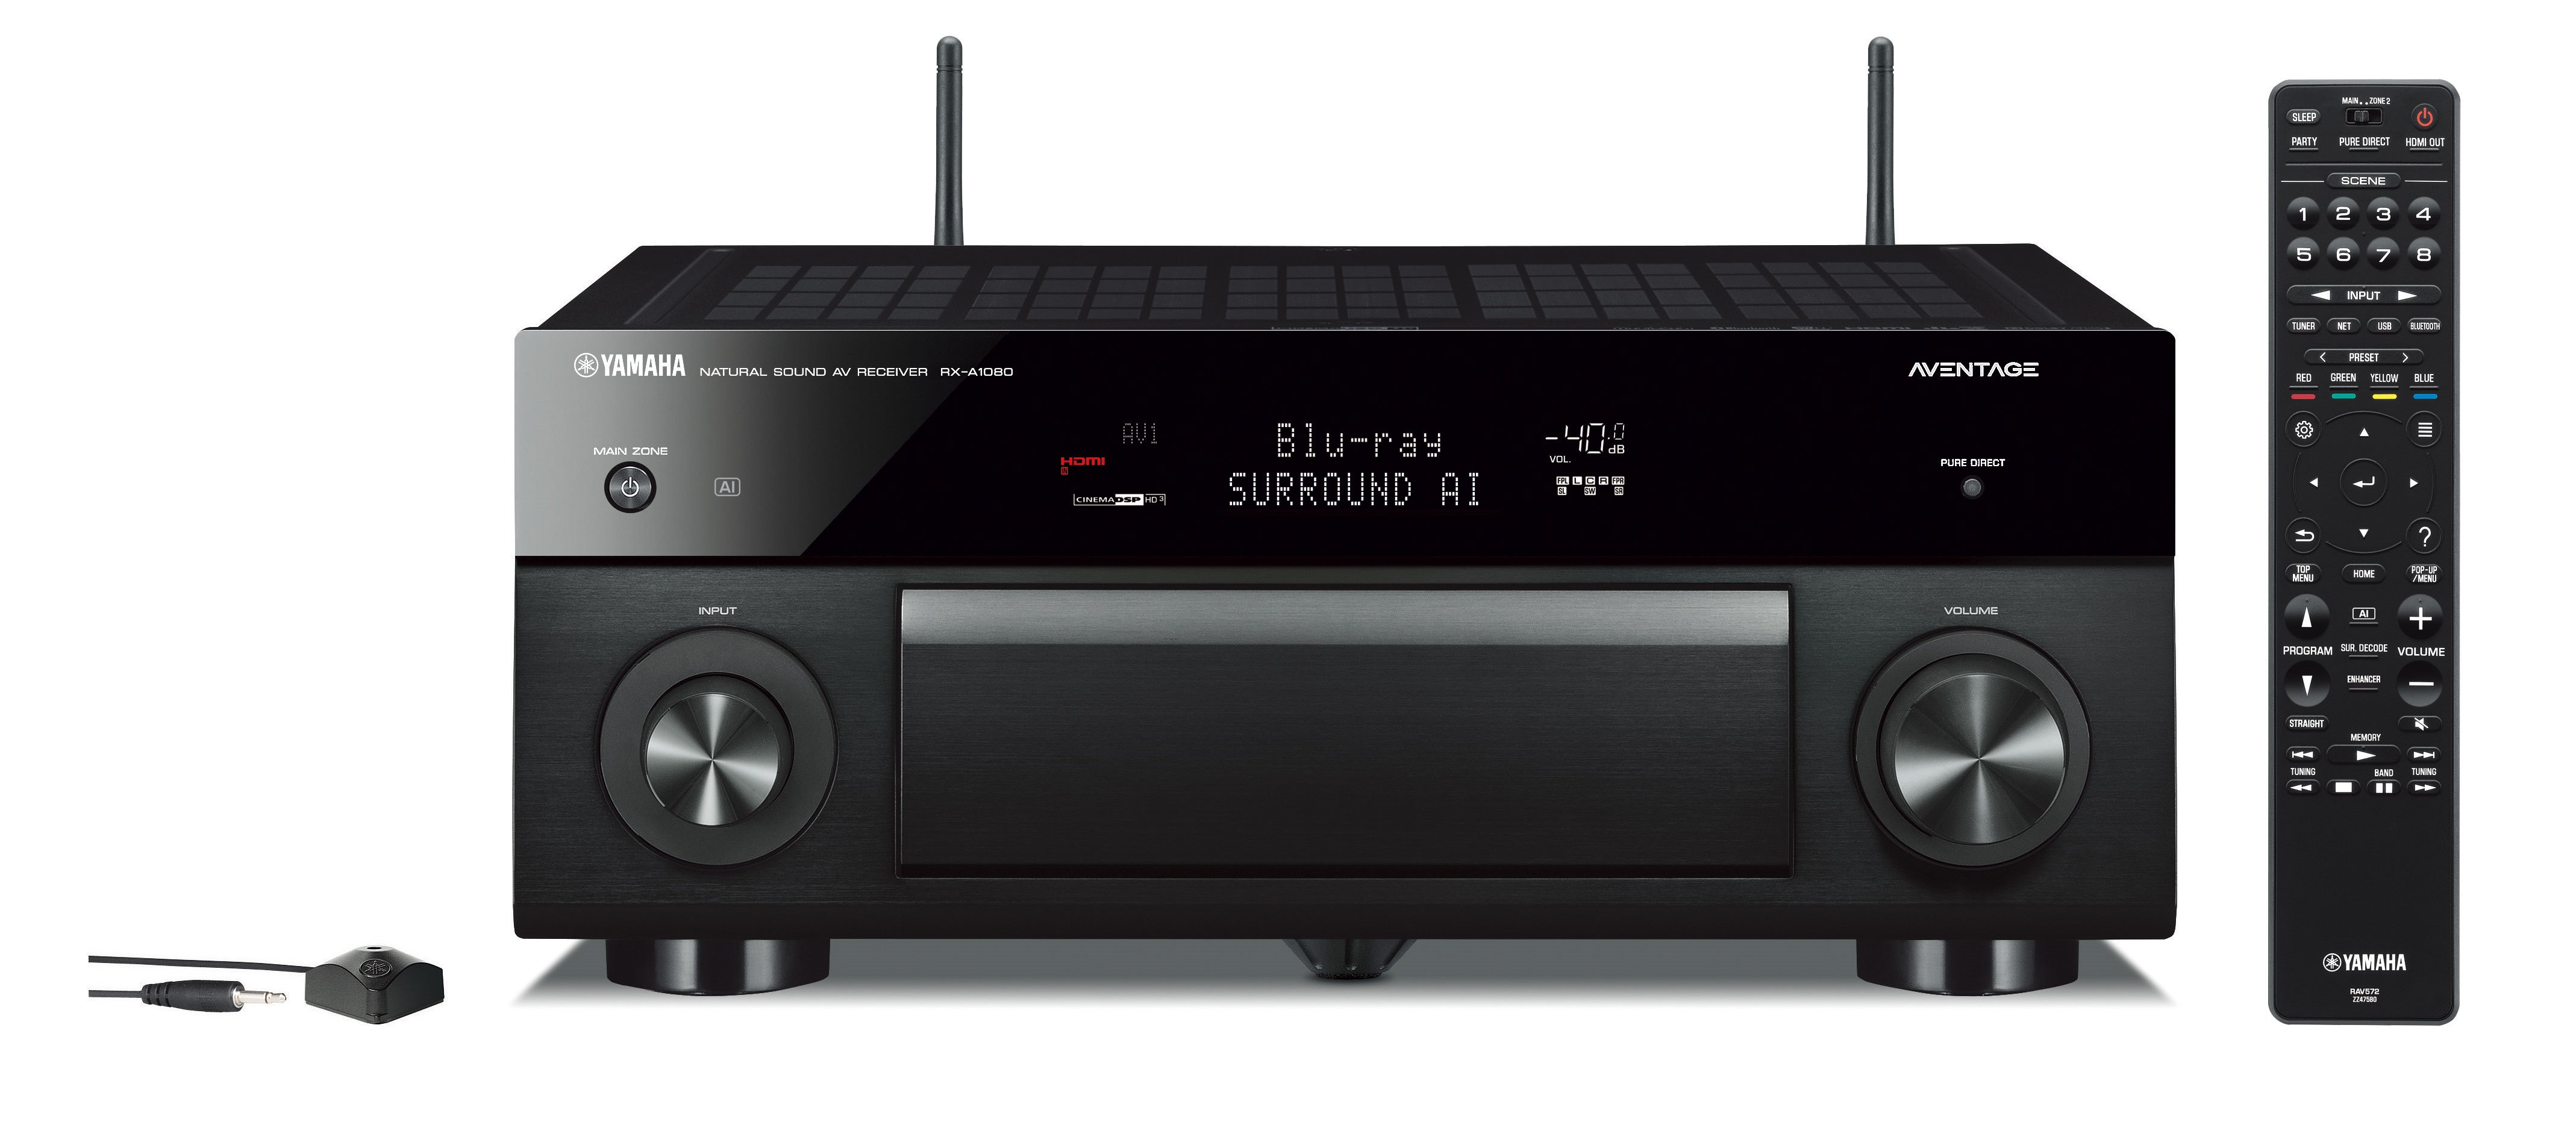 RX-A1080 - Support - AV Receivers - Audio & Visual - Products